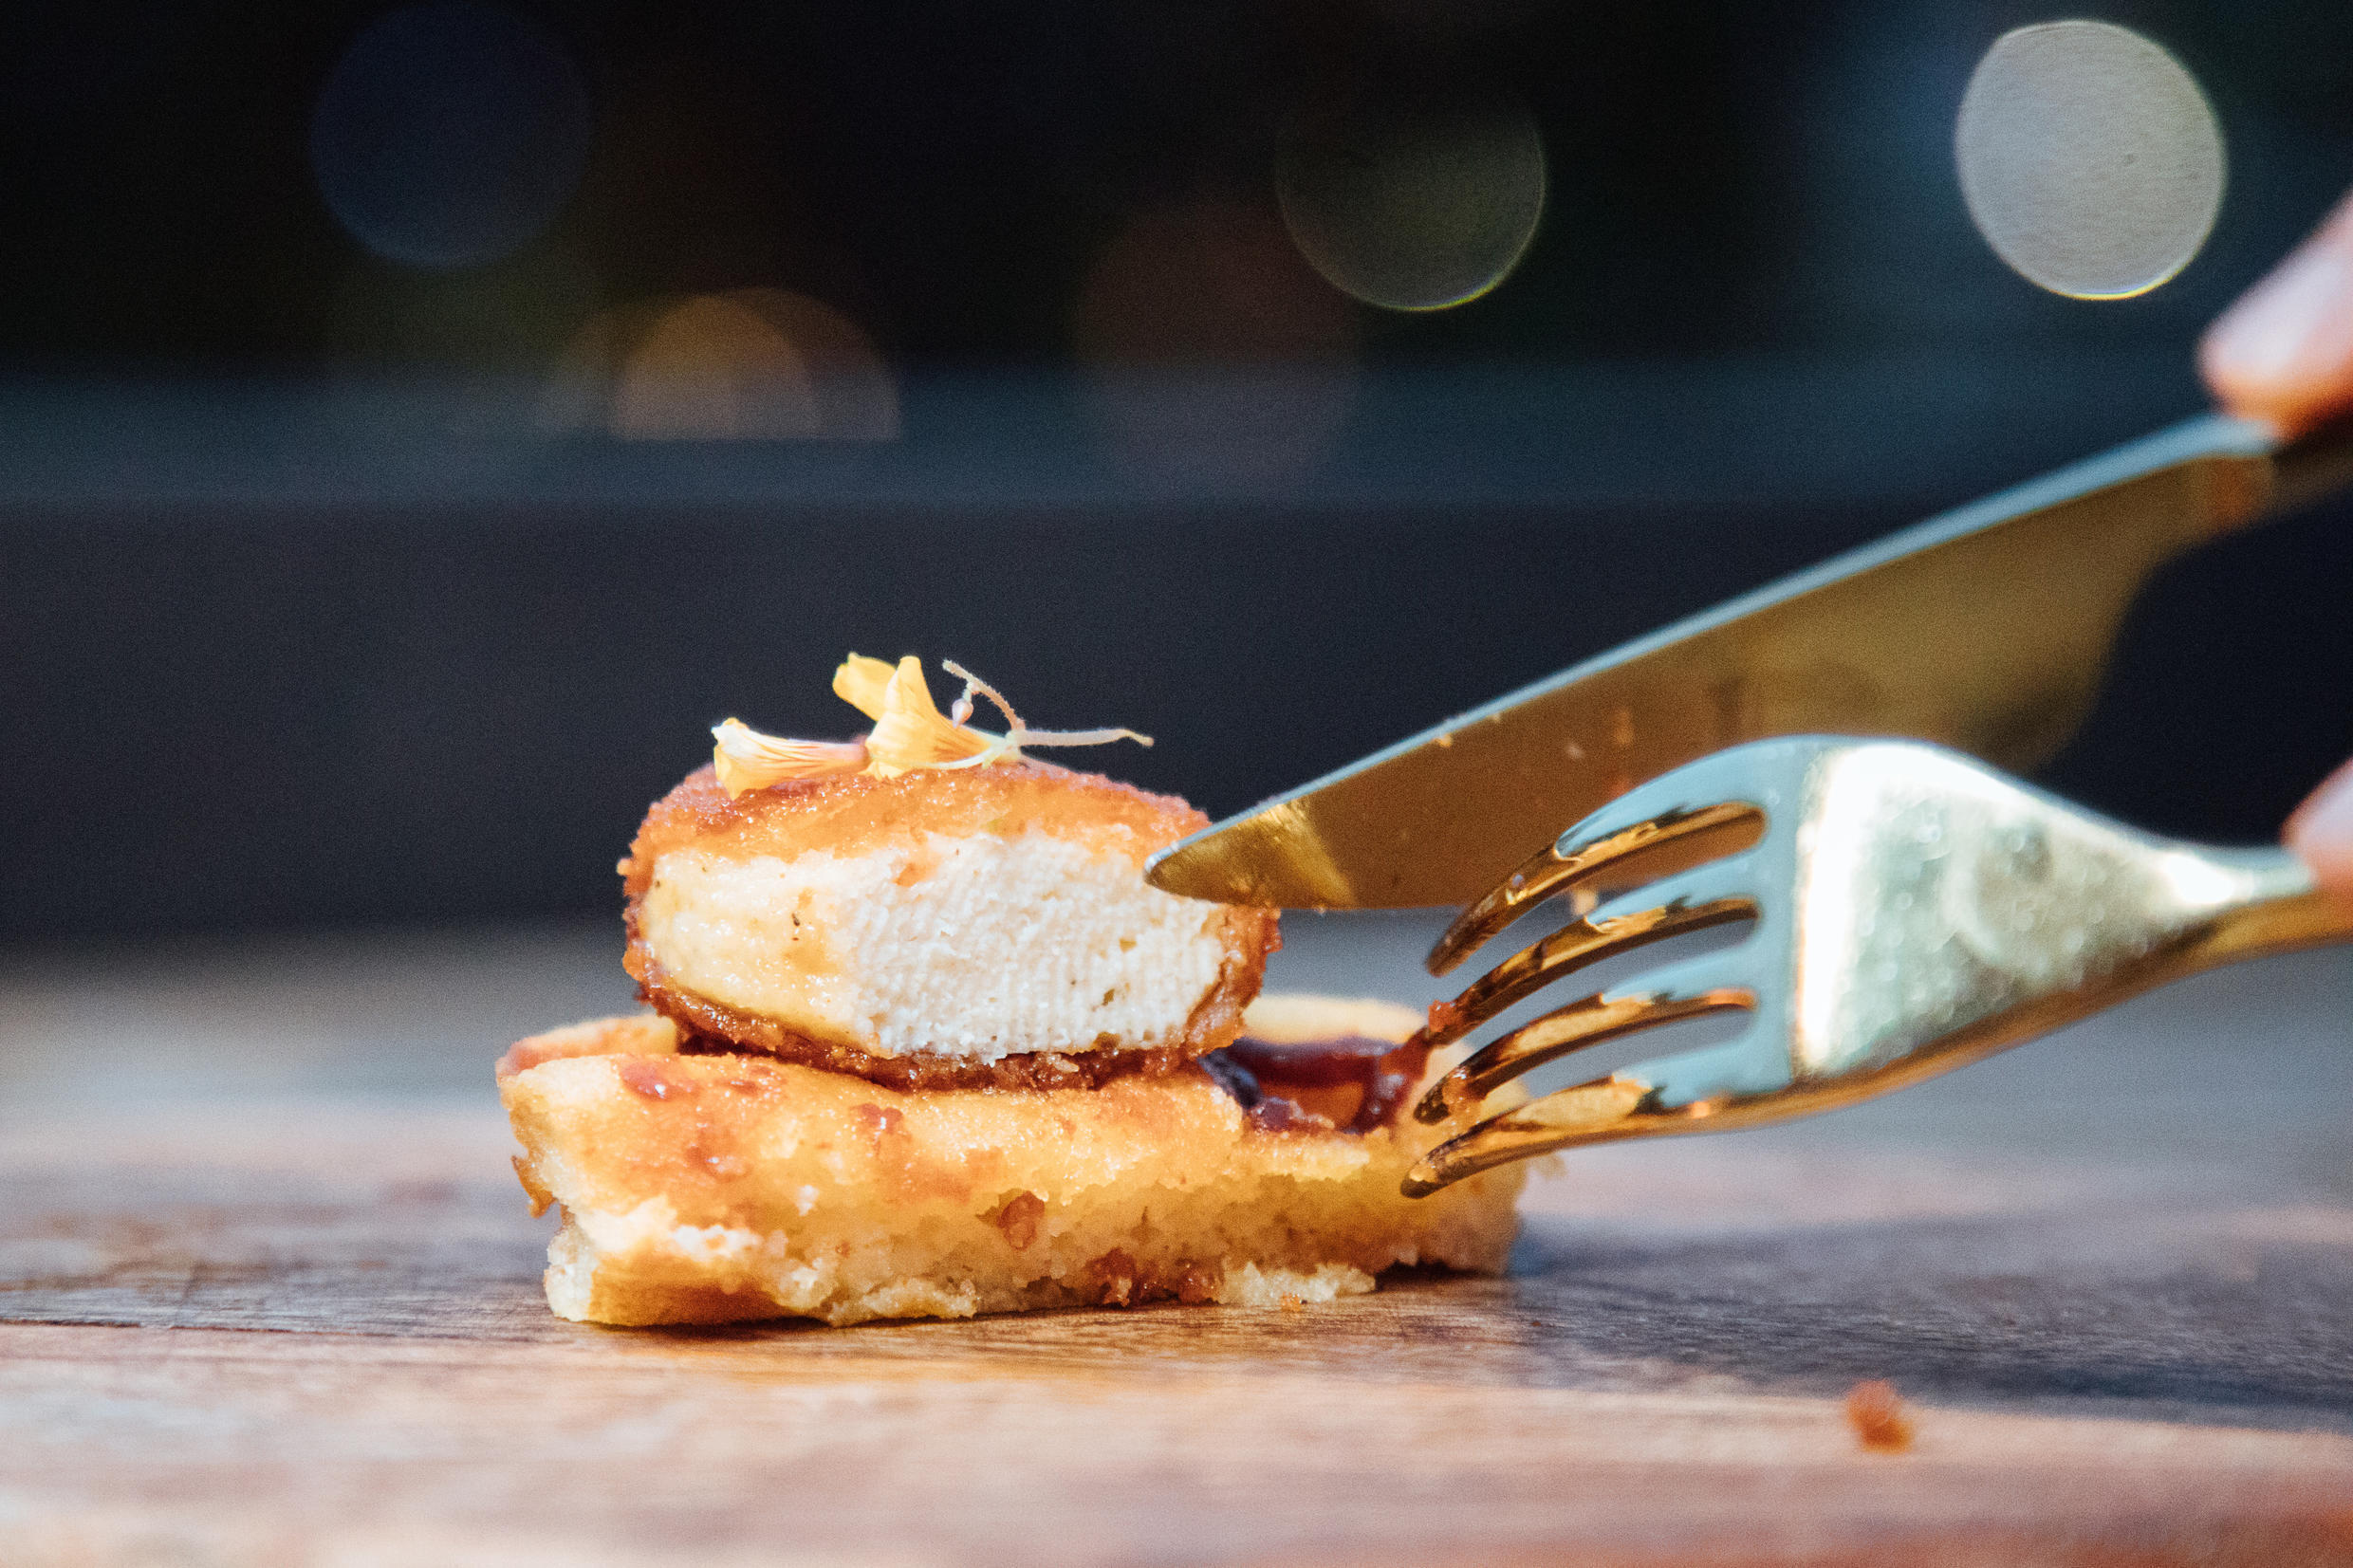 A nugget made from lab-grown chicken meat at a restaurant in Singapore